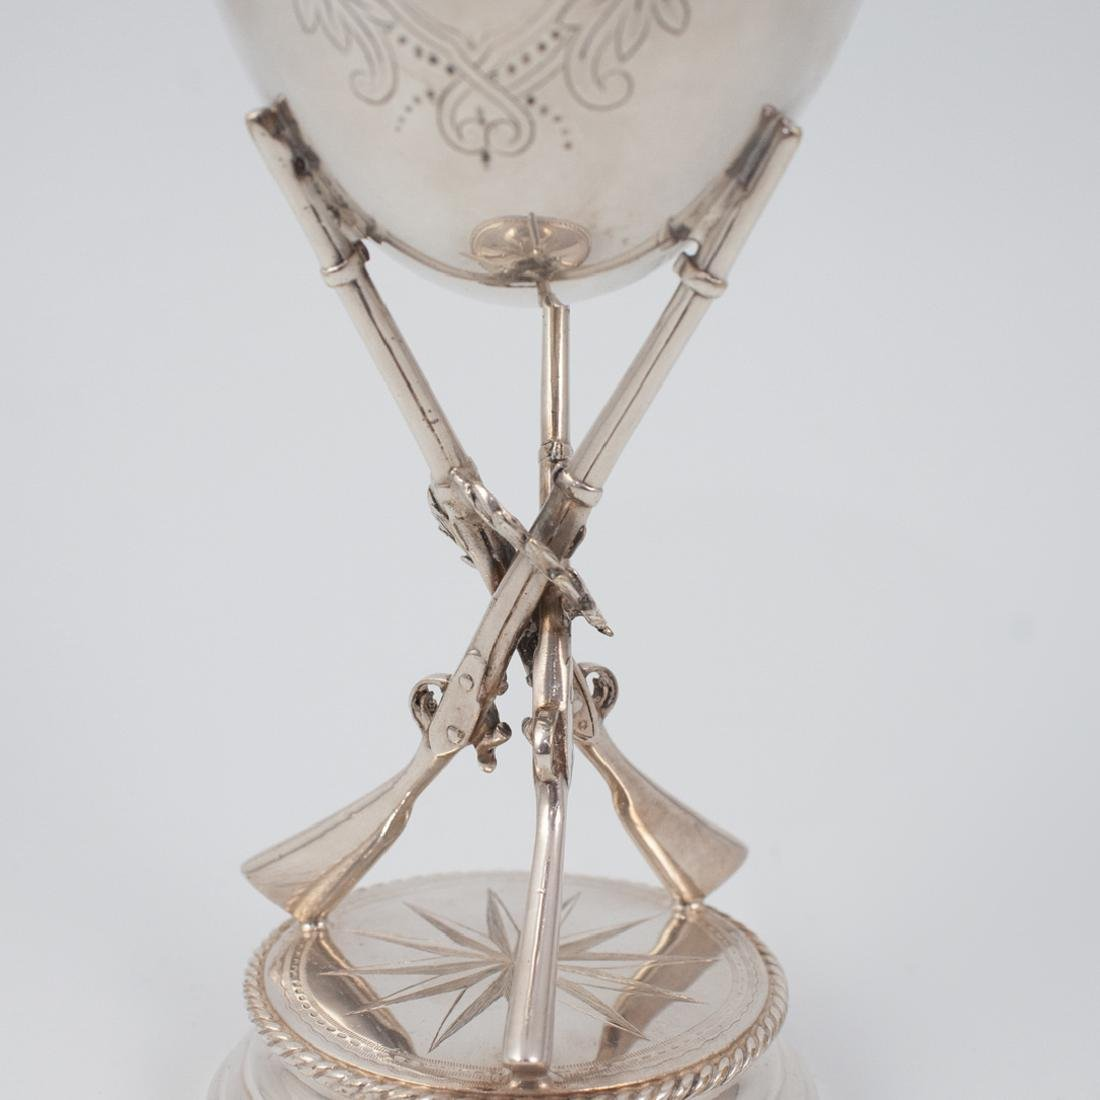 Silver Plated Rifle and Wreath Goblet - 3